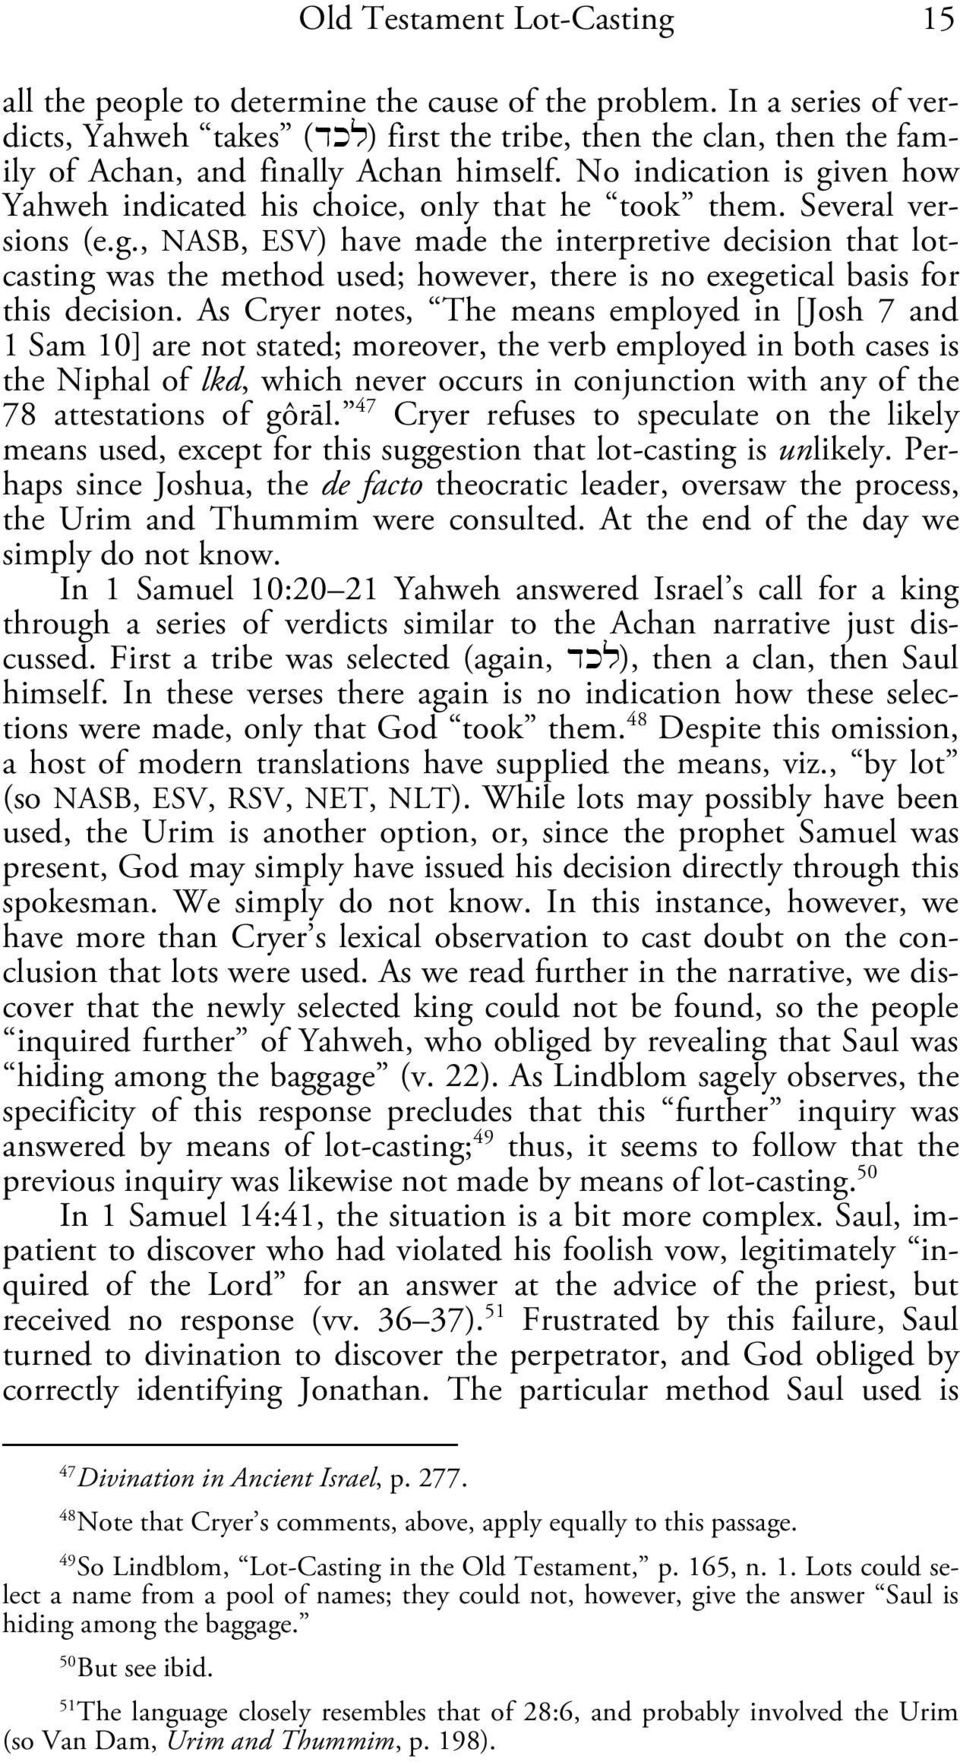 No indication is given how Yahweh indicated his choice, only that he took them. Several versions (e.g., NASB, ESV) have made the interpretive decision that lotcasting was the method used; however, there is no exegetical basis for this decision.